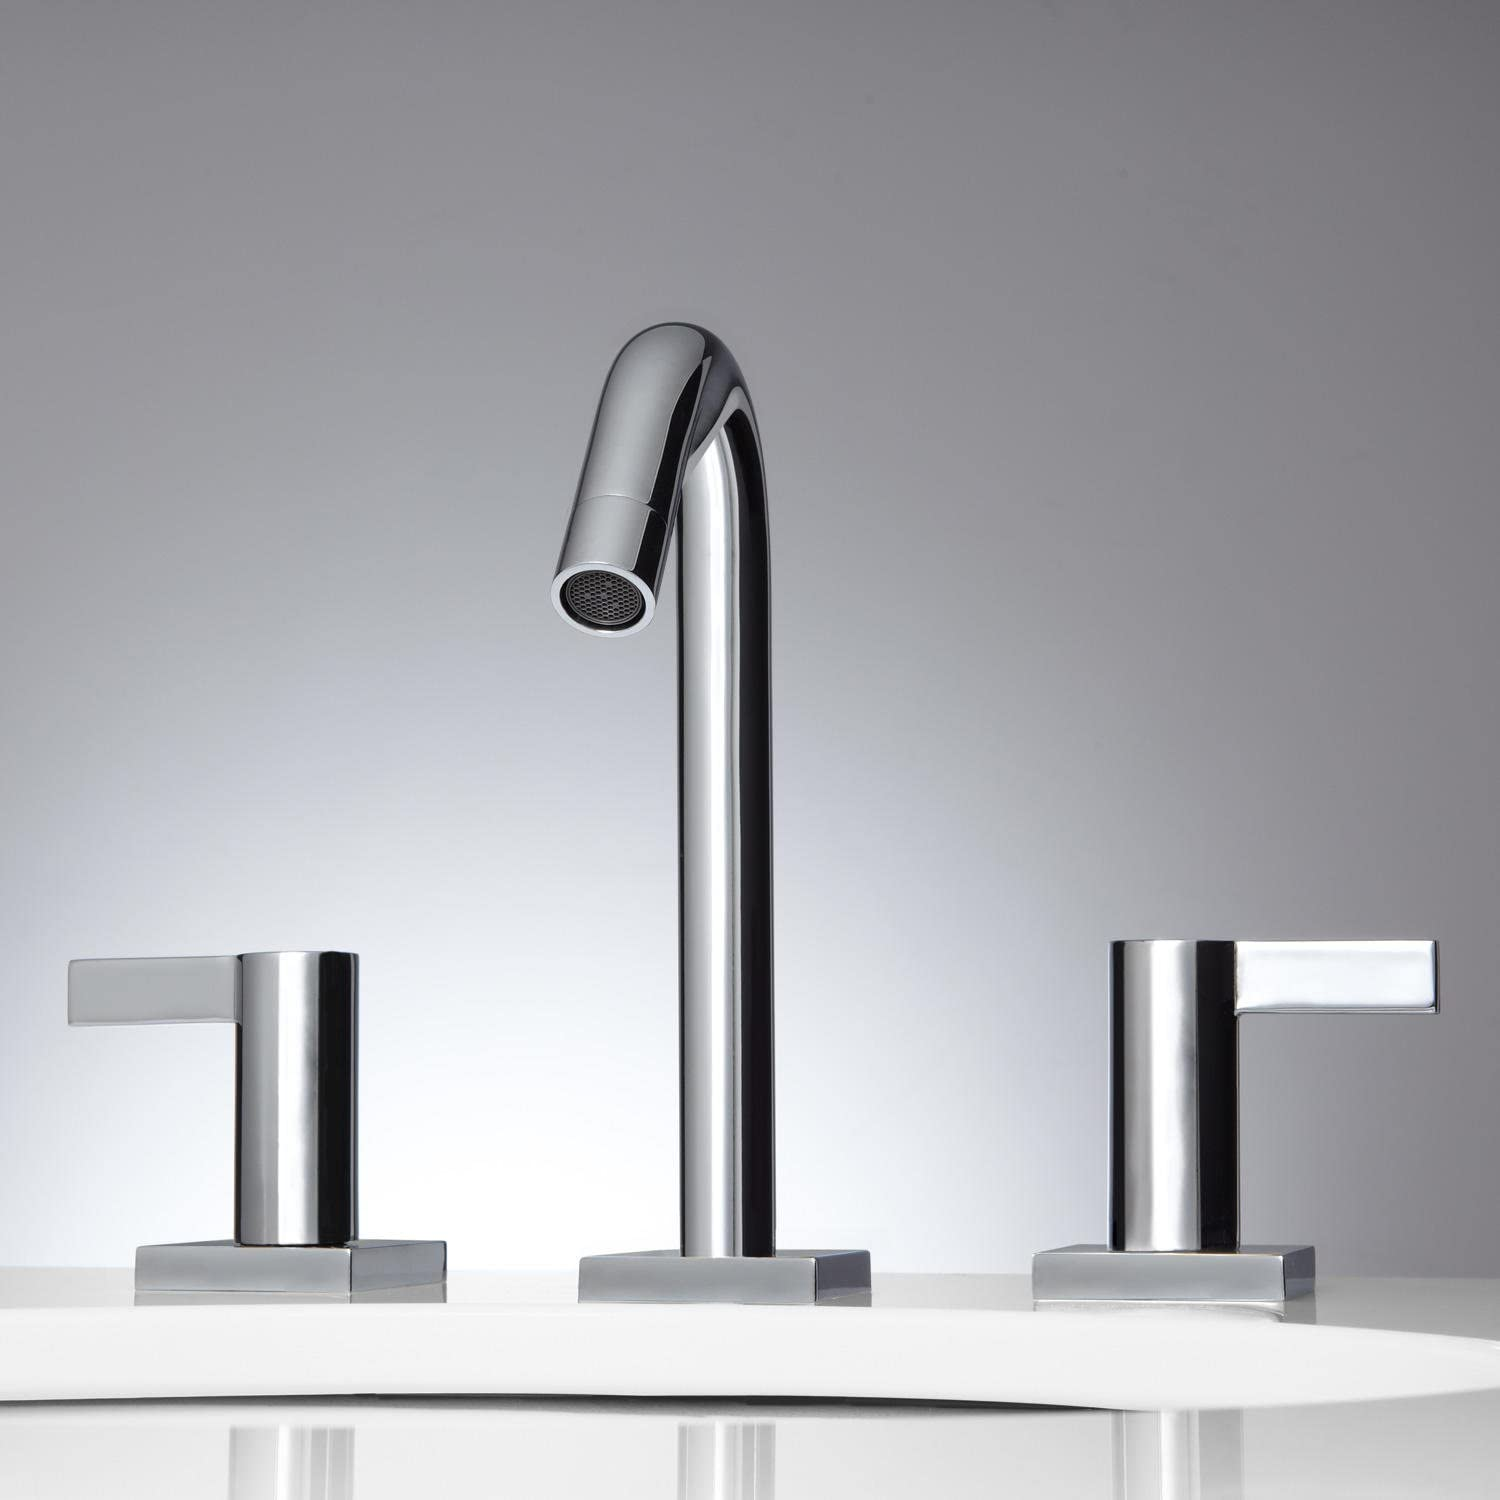 Signature Hardware 920797 Flair Widespread Bathroom Faucet with Pop-Up Drain Assembly